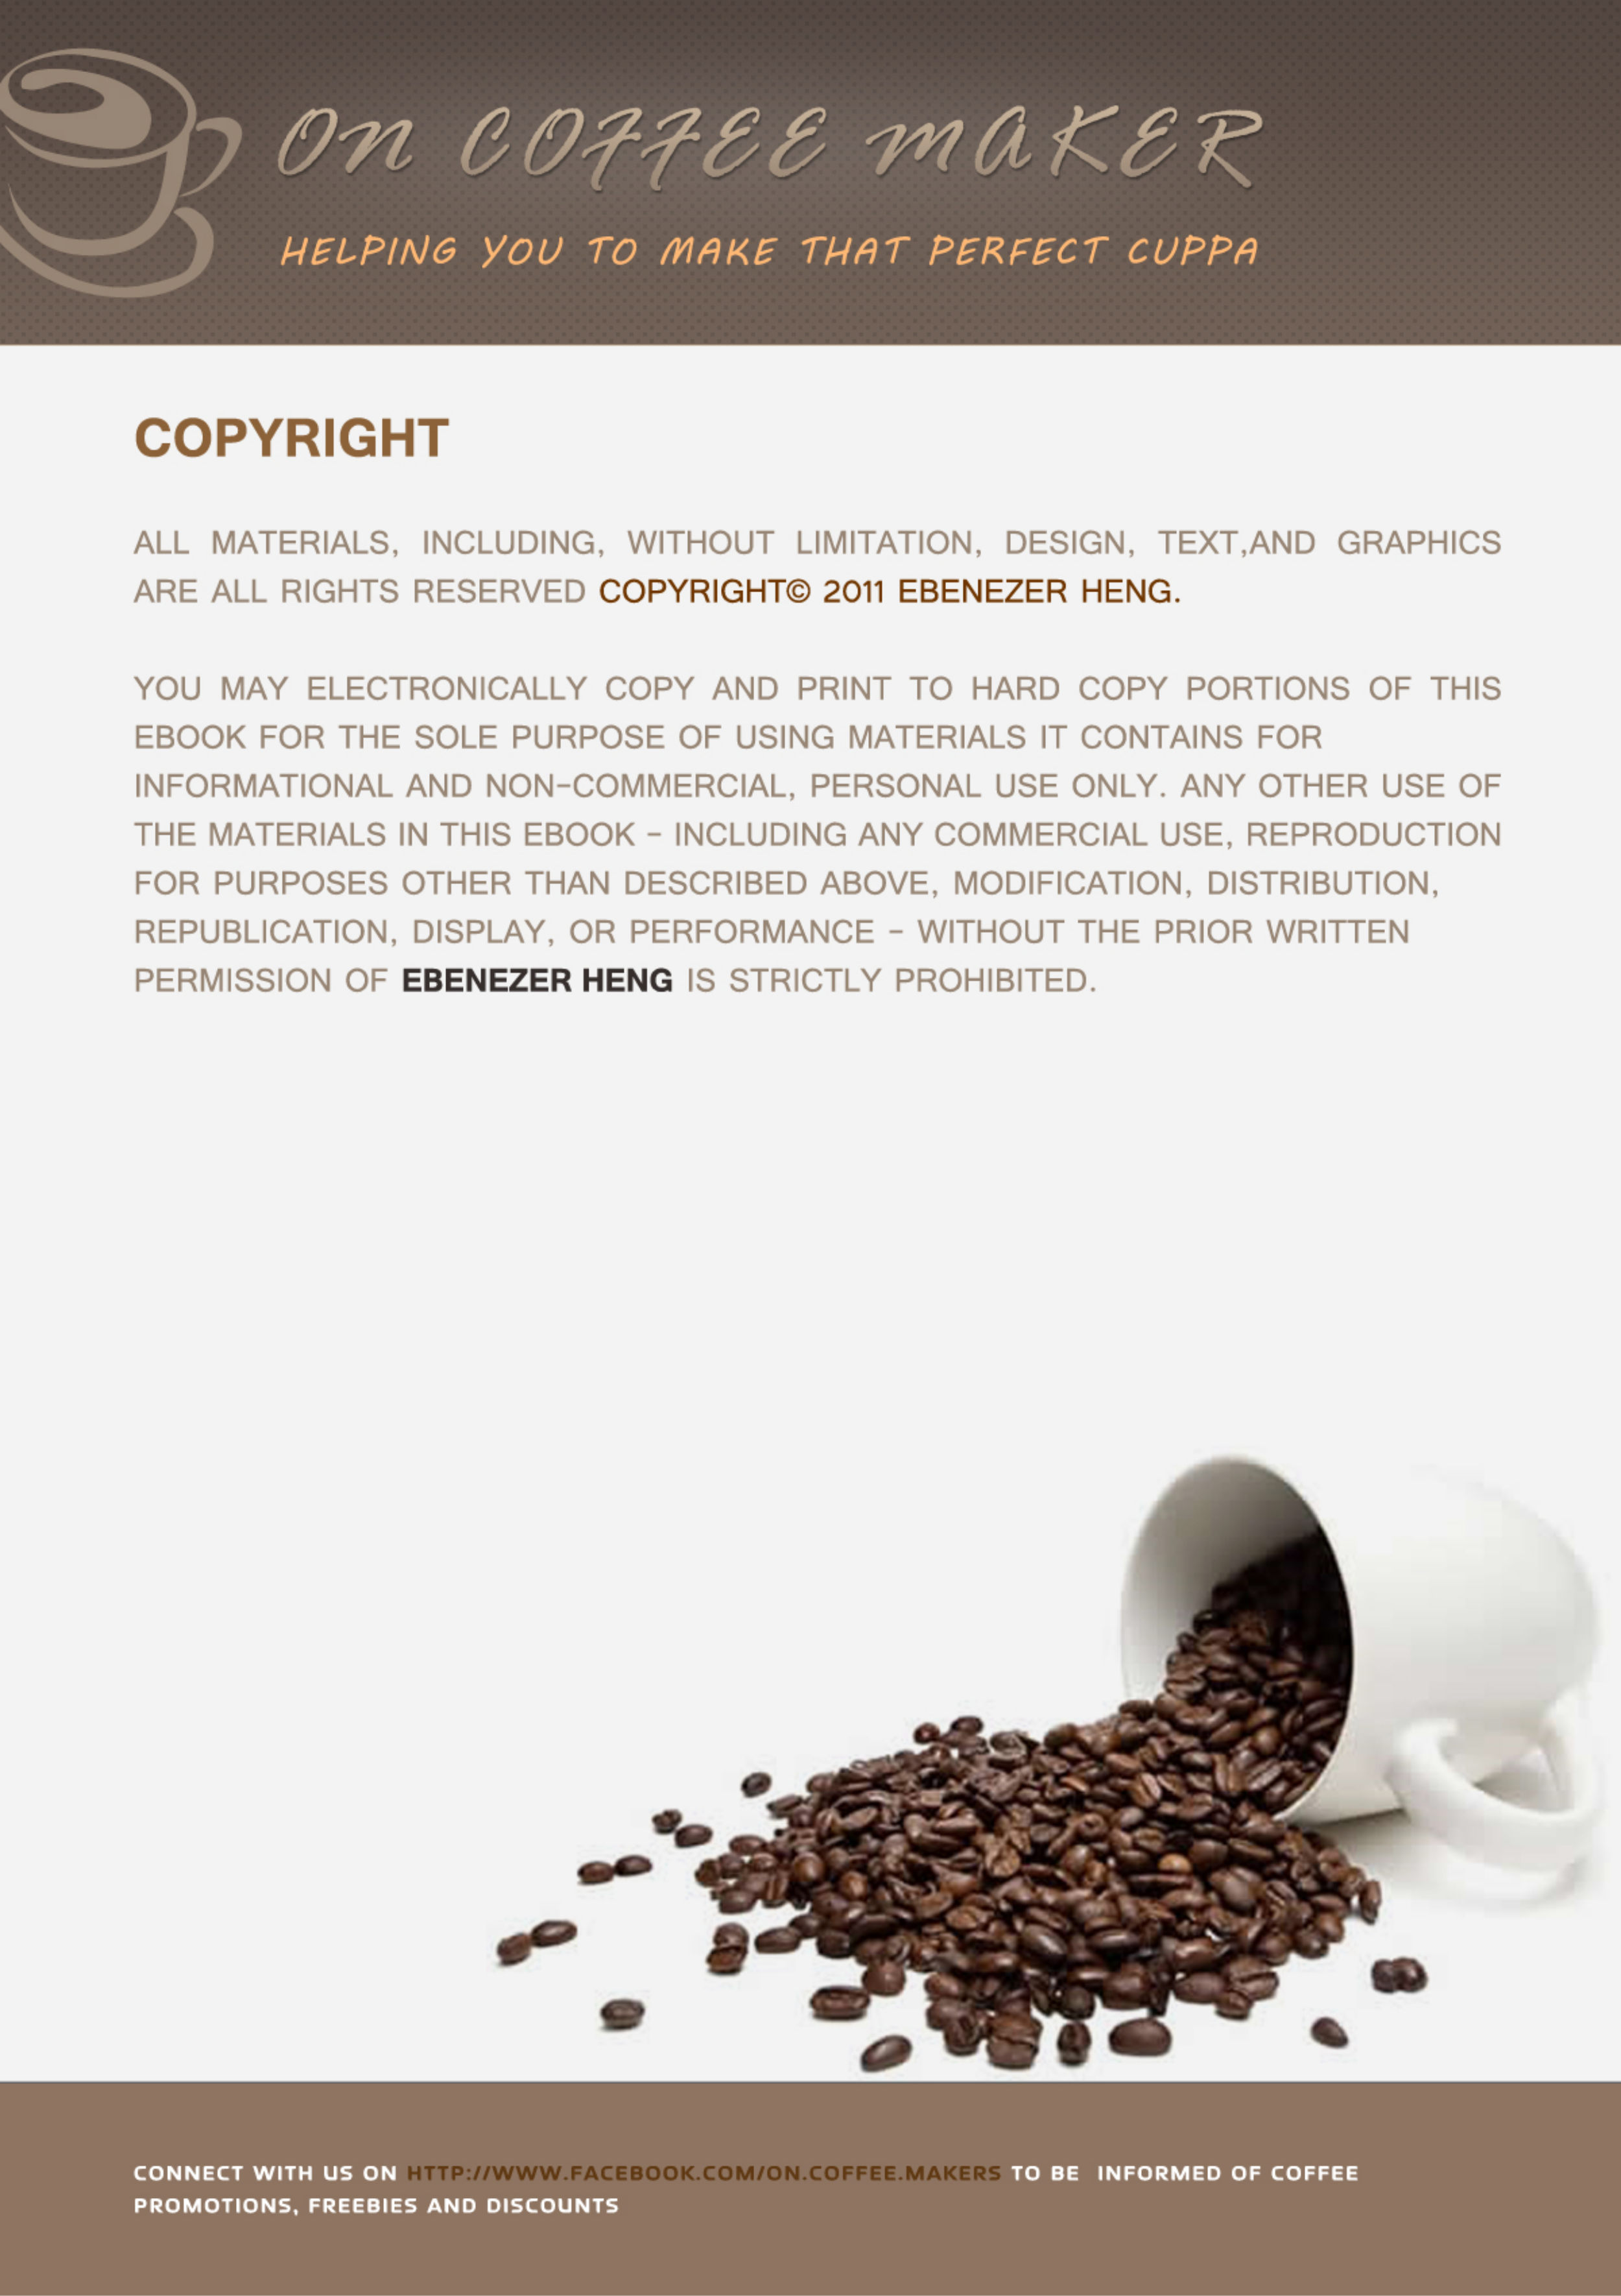 Download free pdf for Krups FMF5 Coffee Maker manual